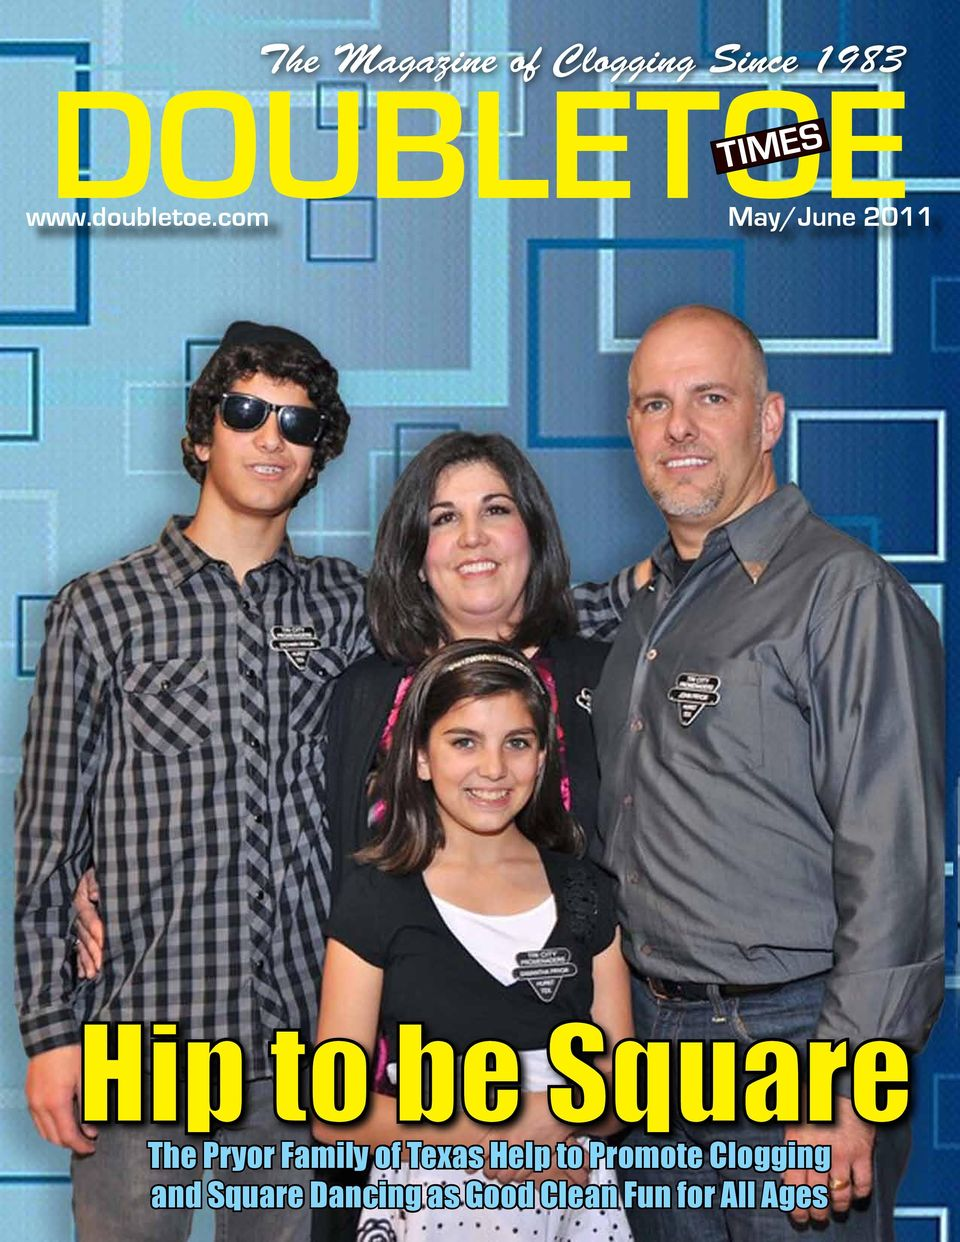 DOUBLETOE  Hip to be Square  The Magazine of Clogging Since